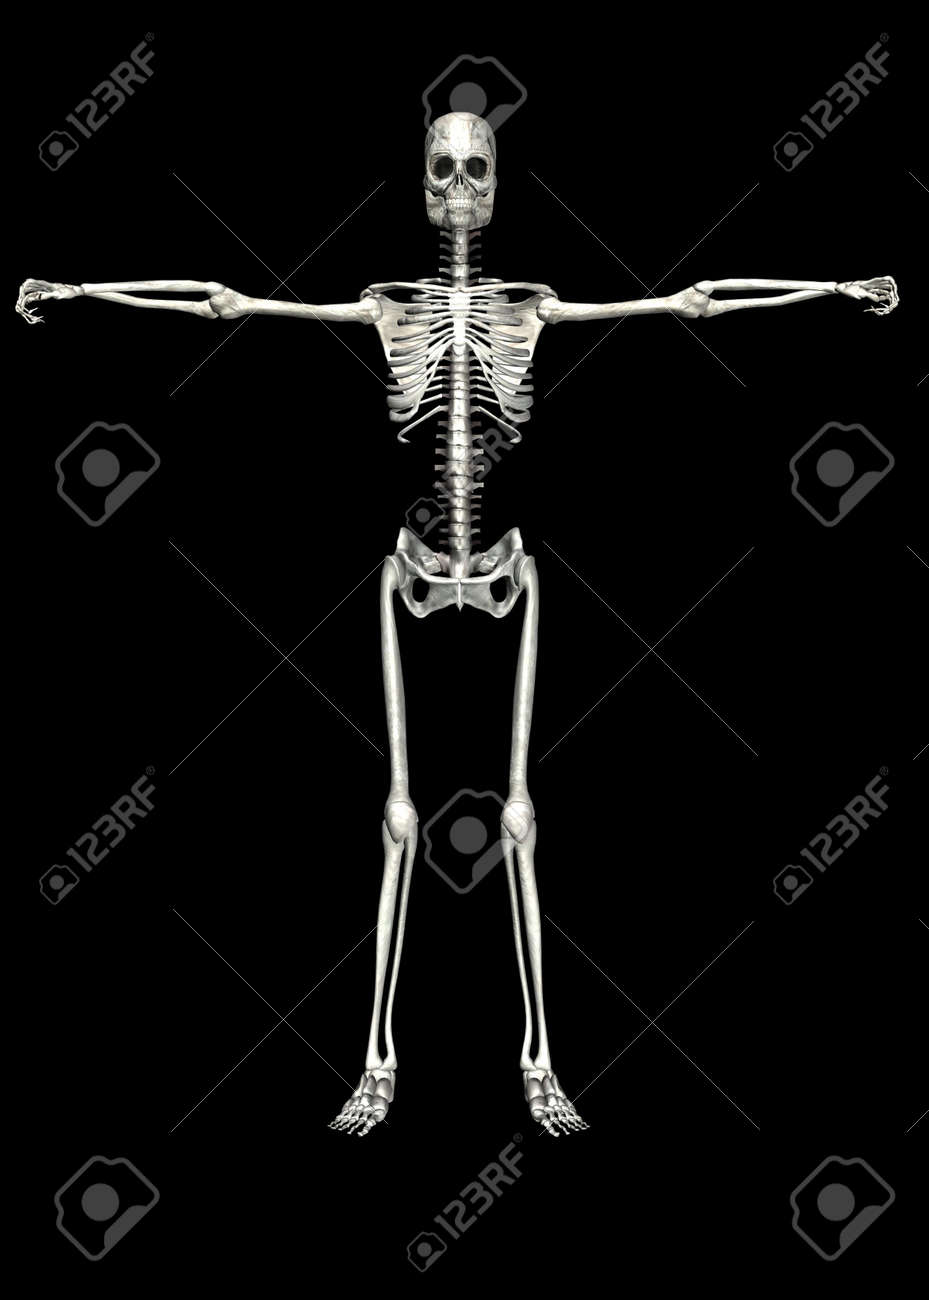 Illustration of a skeleton isolated on a black background Stock Photo - 12743270